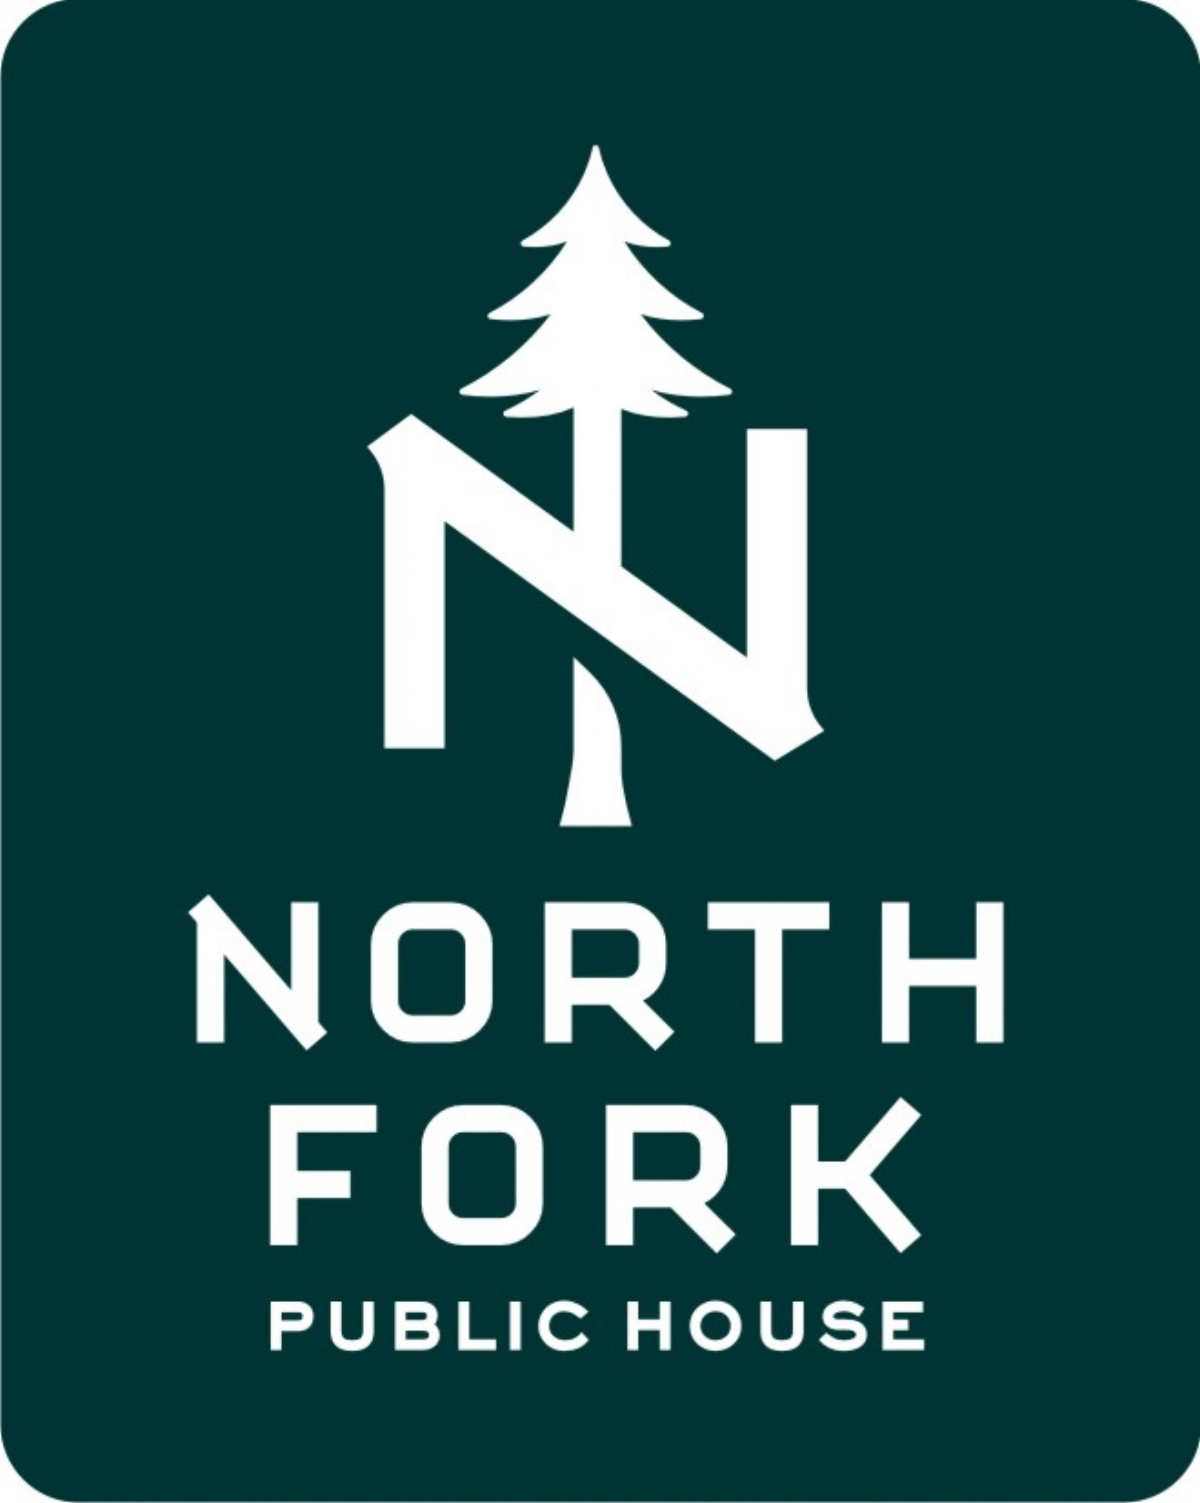 North Fork Public House